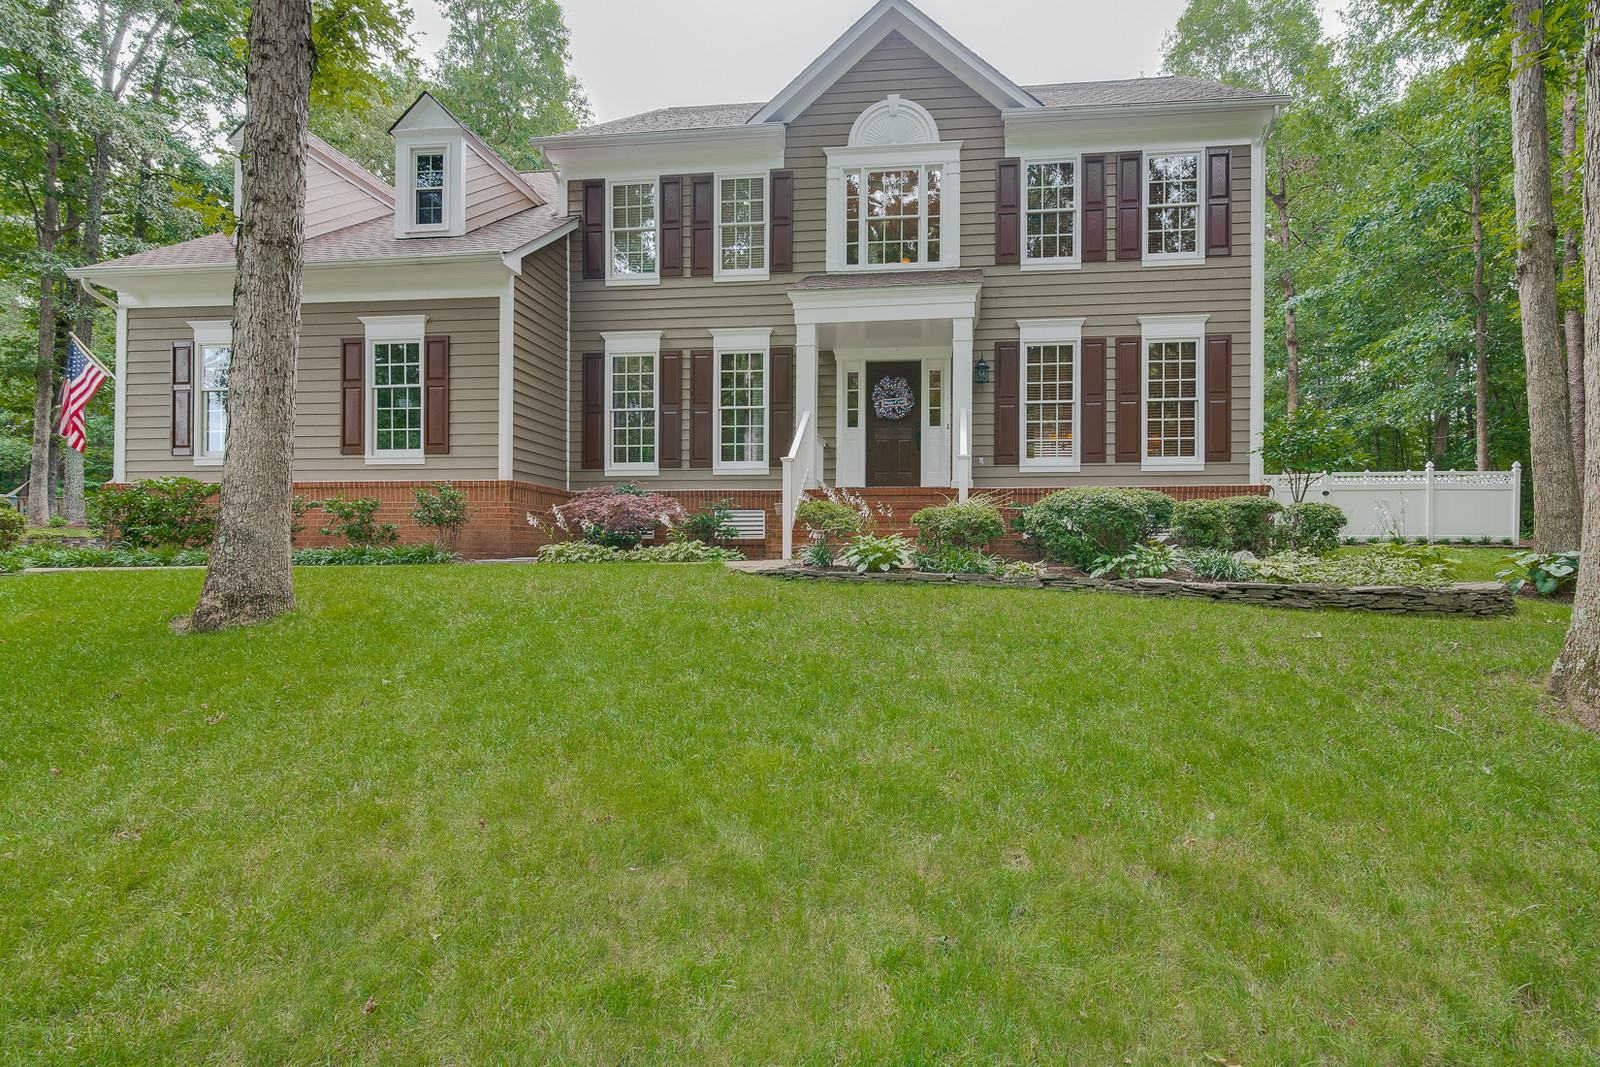 Home of the Week: Three Level Colonial in Sawhill